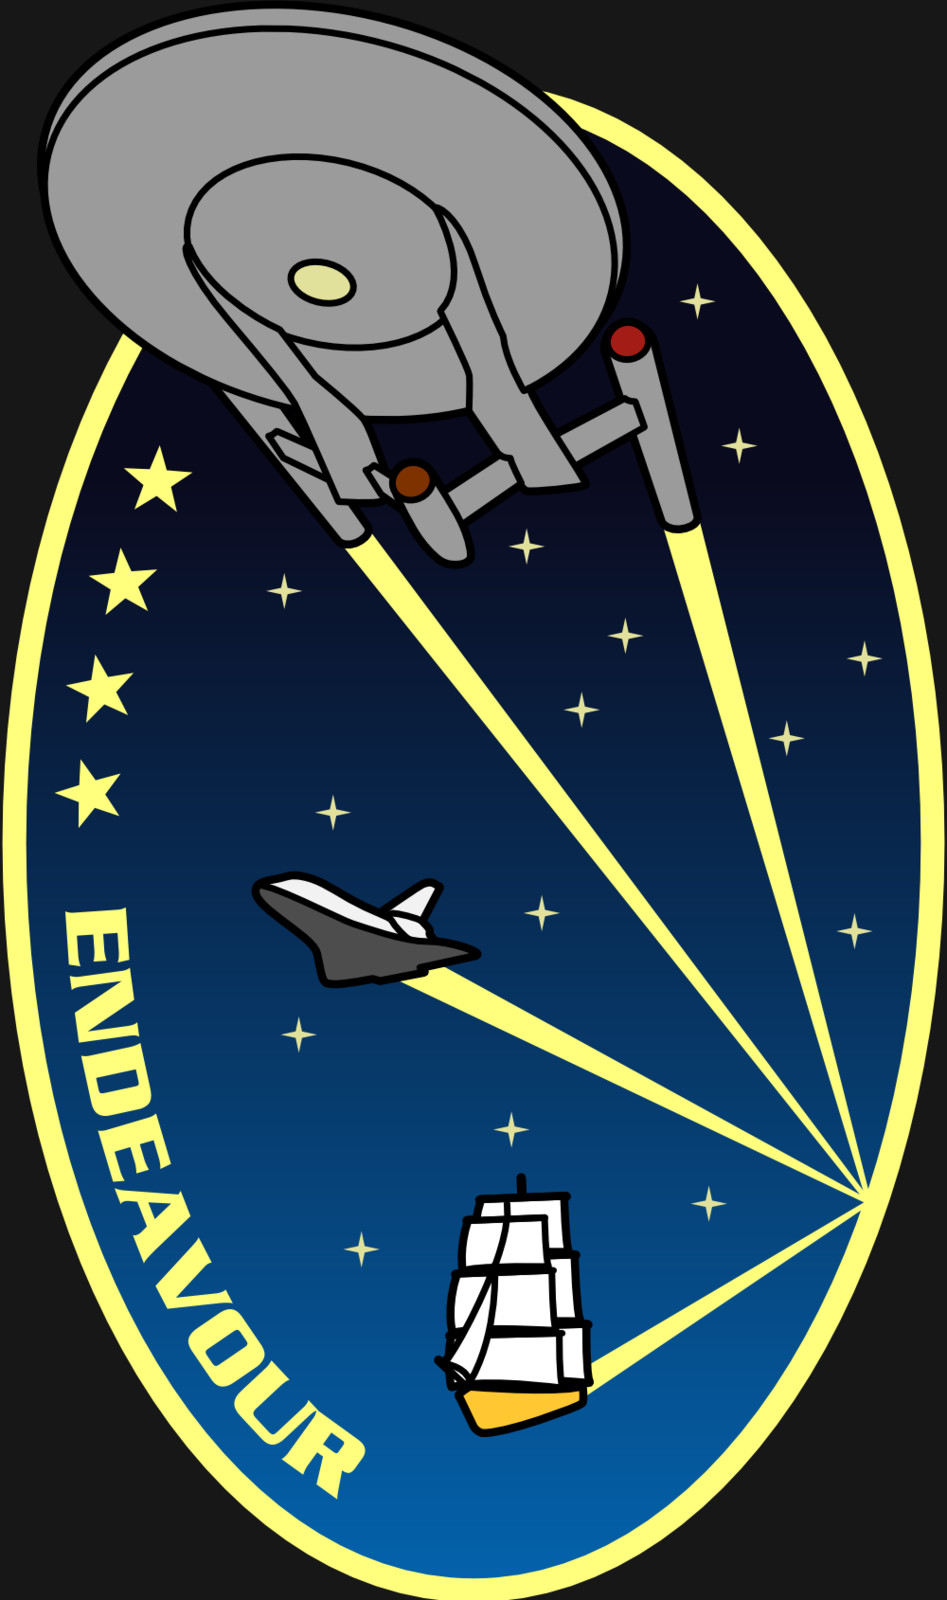 Assignment Patch for UESPA-NX-06 Endeavour